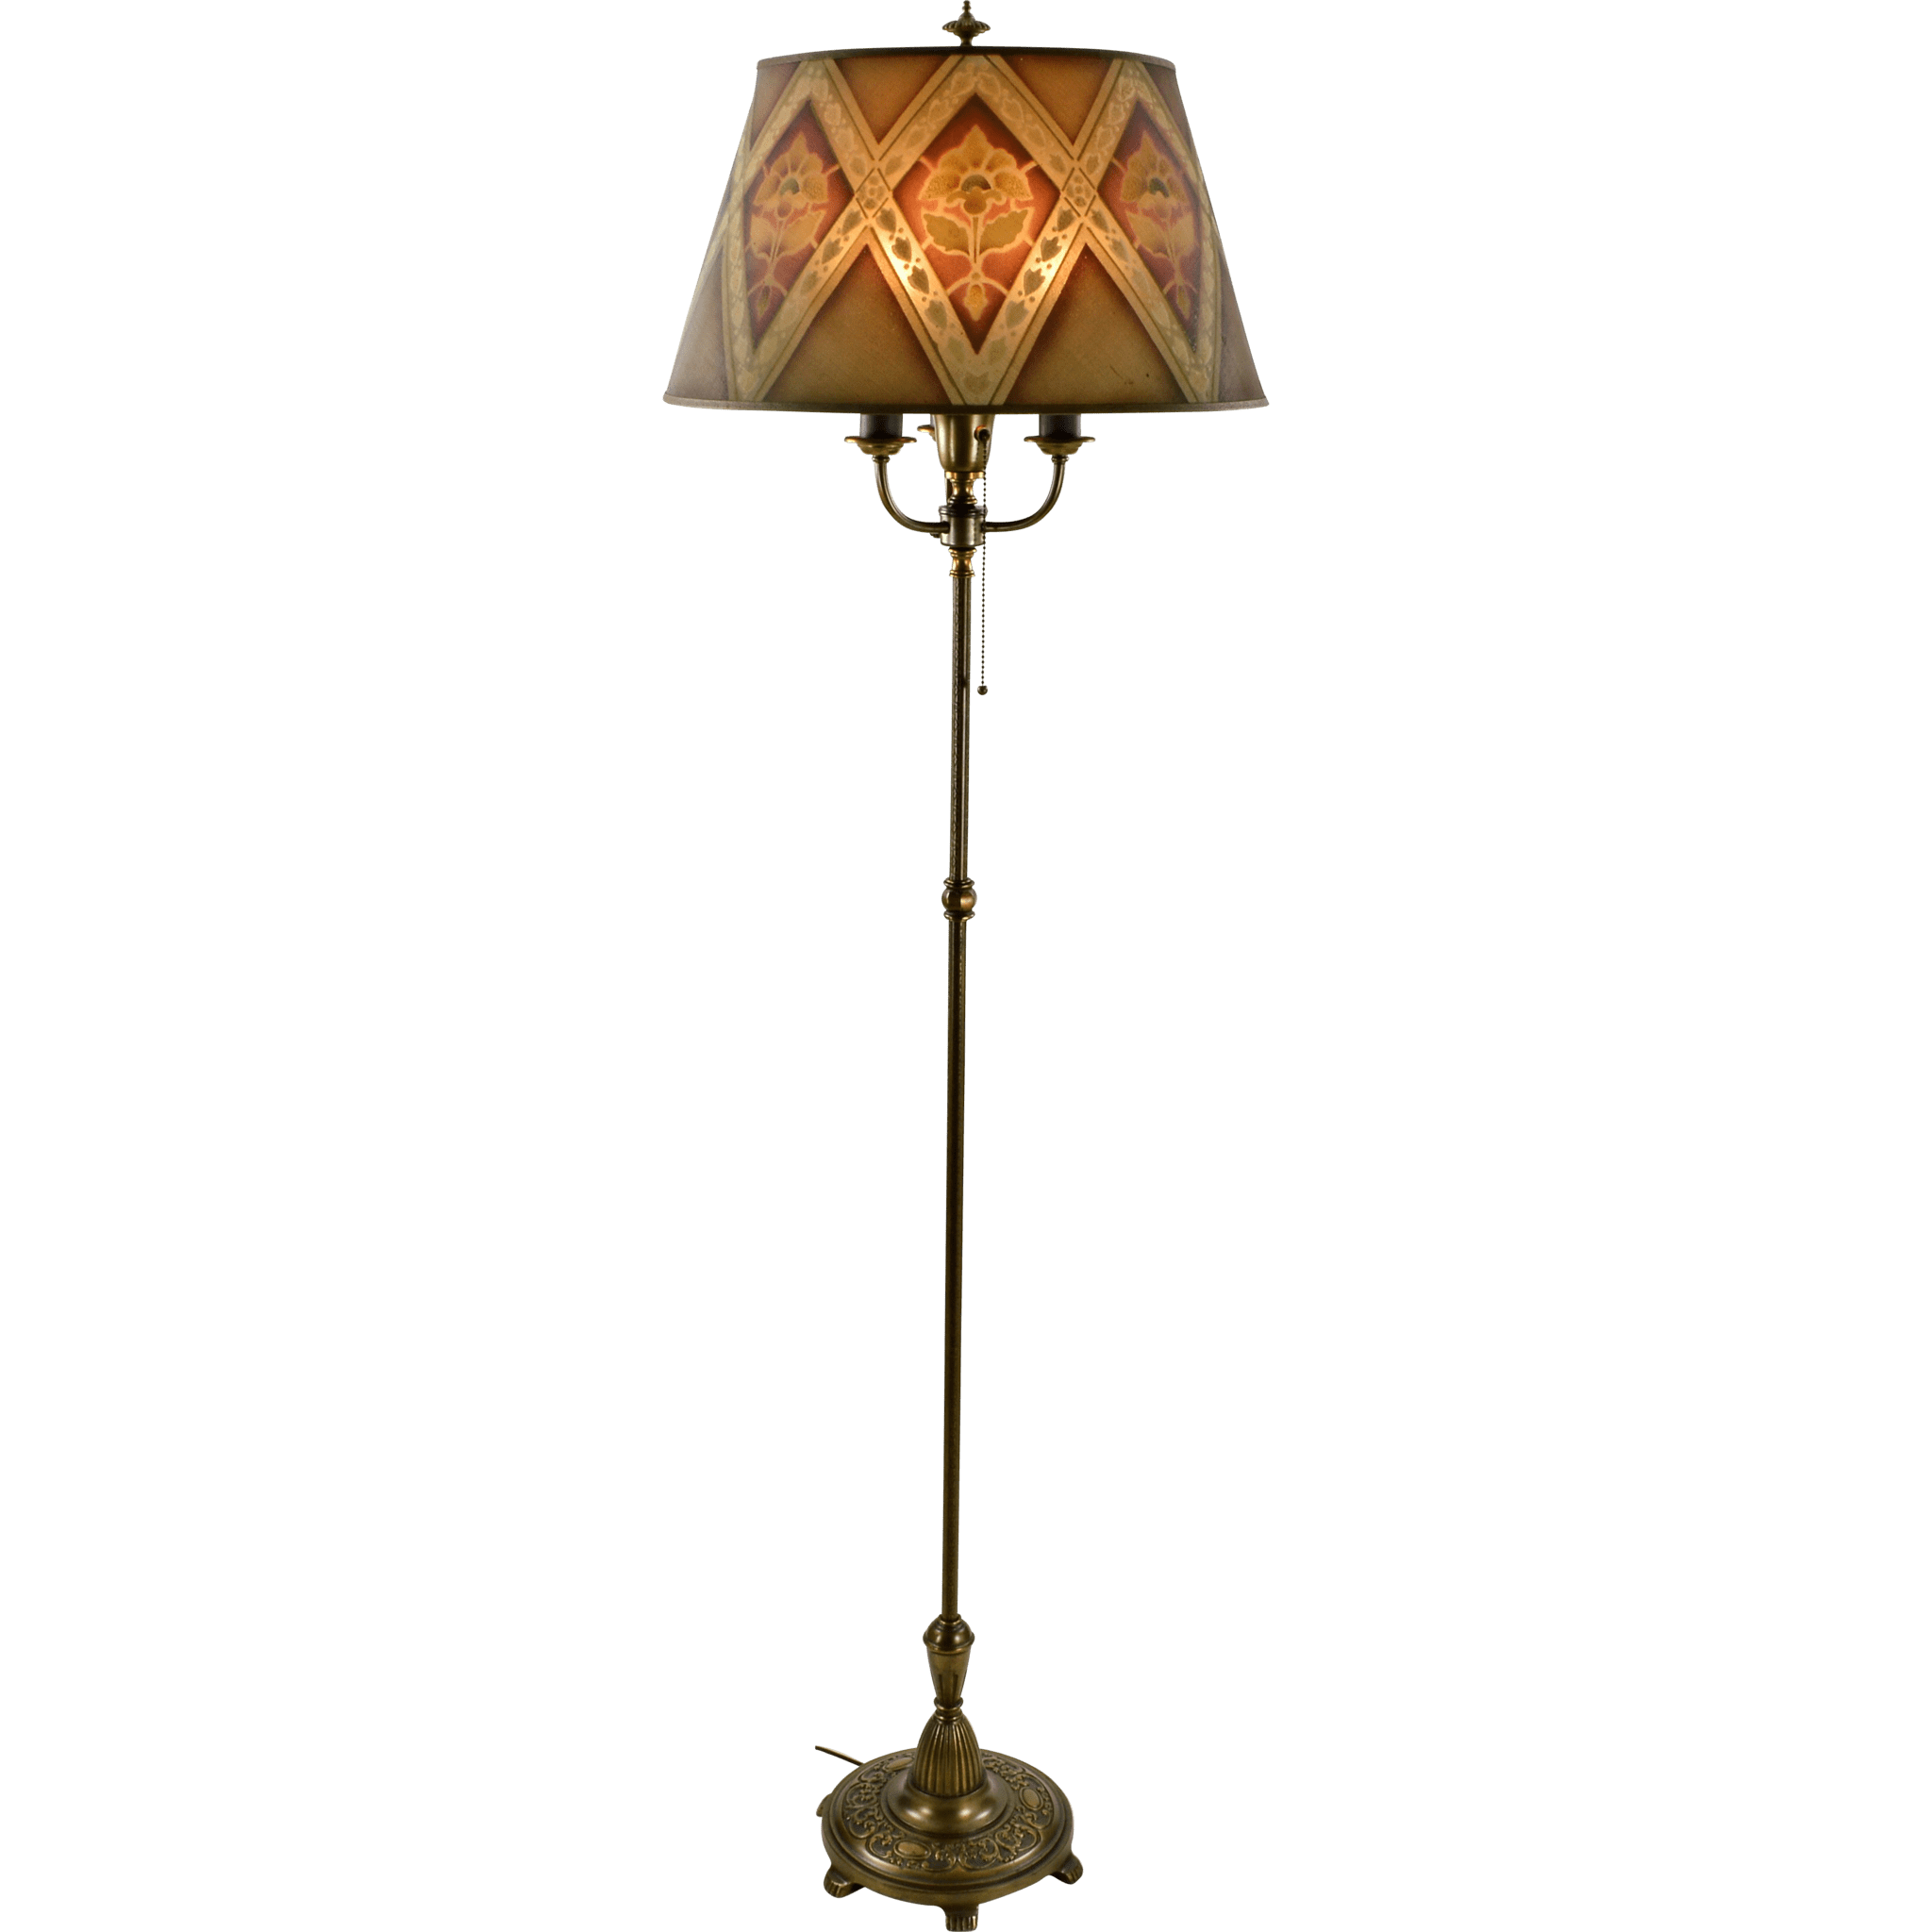 25 facts about Vintage floor lamps you should to know